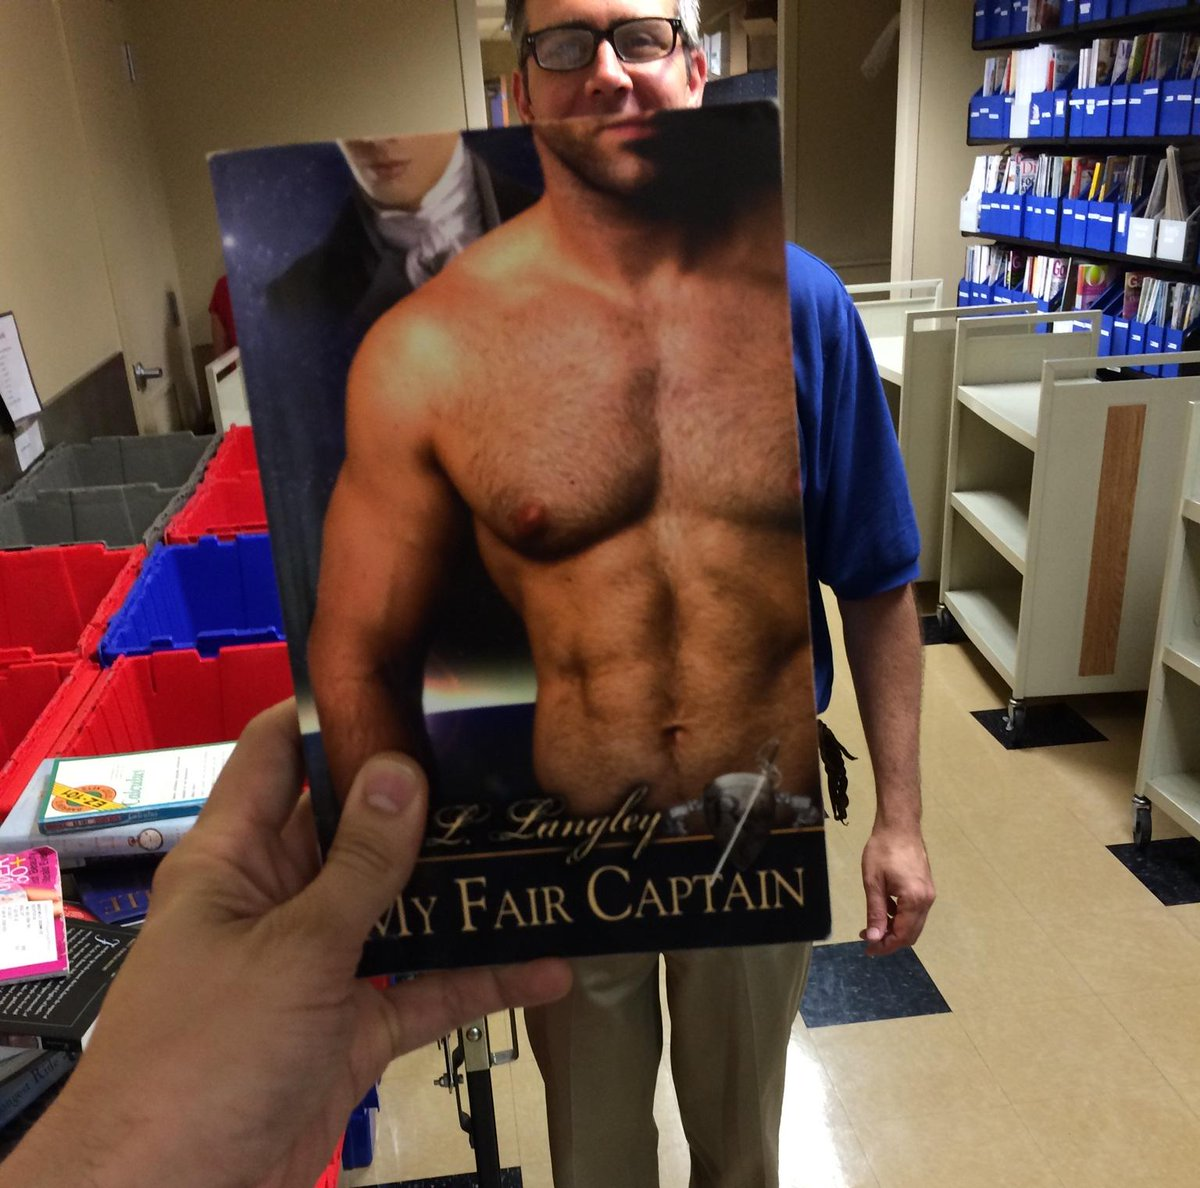 #BookFaceFriday! We'd love for you to join fun & show us YOUR bookface! http://t.co/EoLZ3i4AQU. #SLPL150 #bookface http://t.co/VdYQk9N6Qq